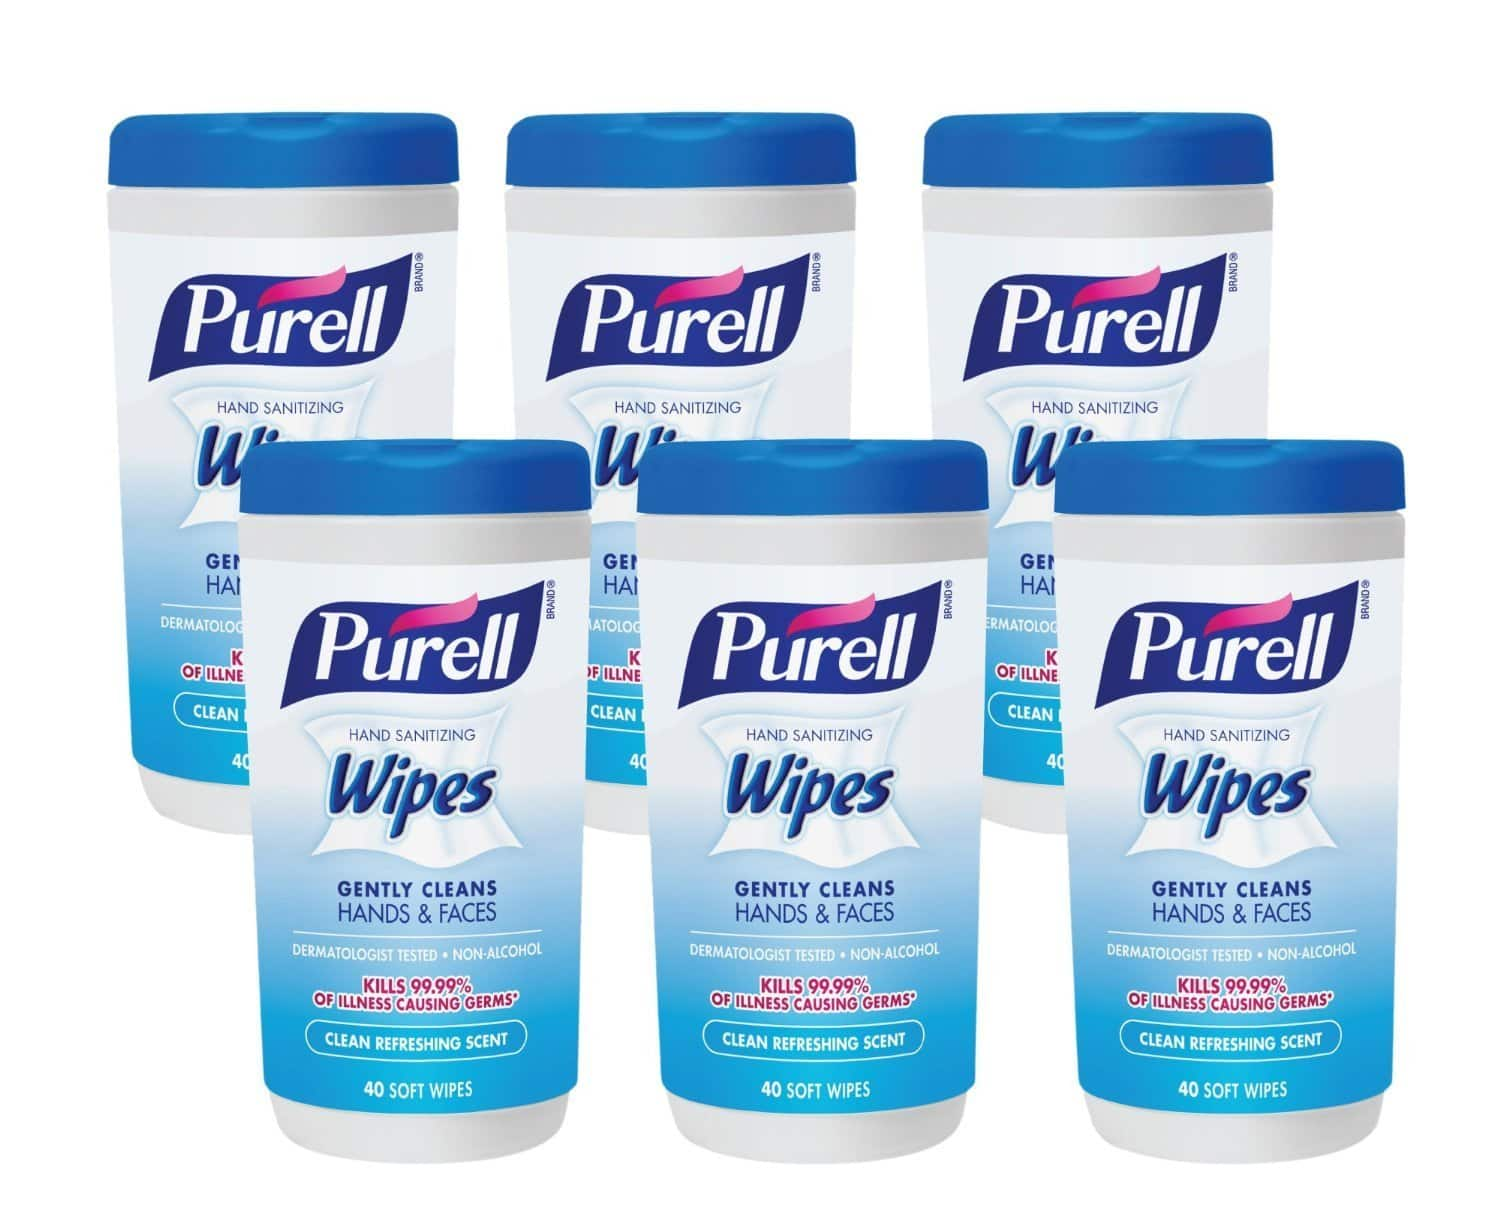 Purell 9120-06-CMR Hand Sanitizing Wipes, Clean Refreshing Scent, 40 Count Canister (Pack of 6) $11.38 @amazon